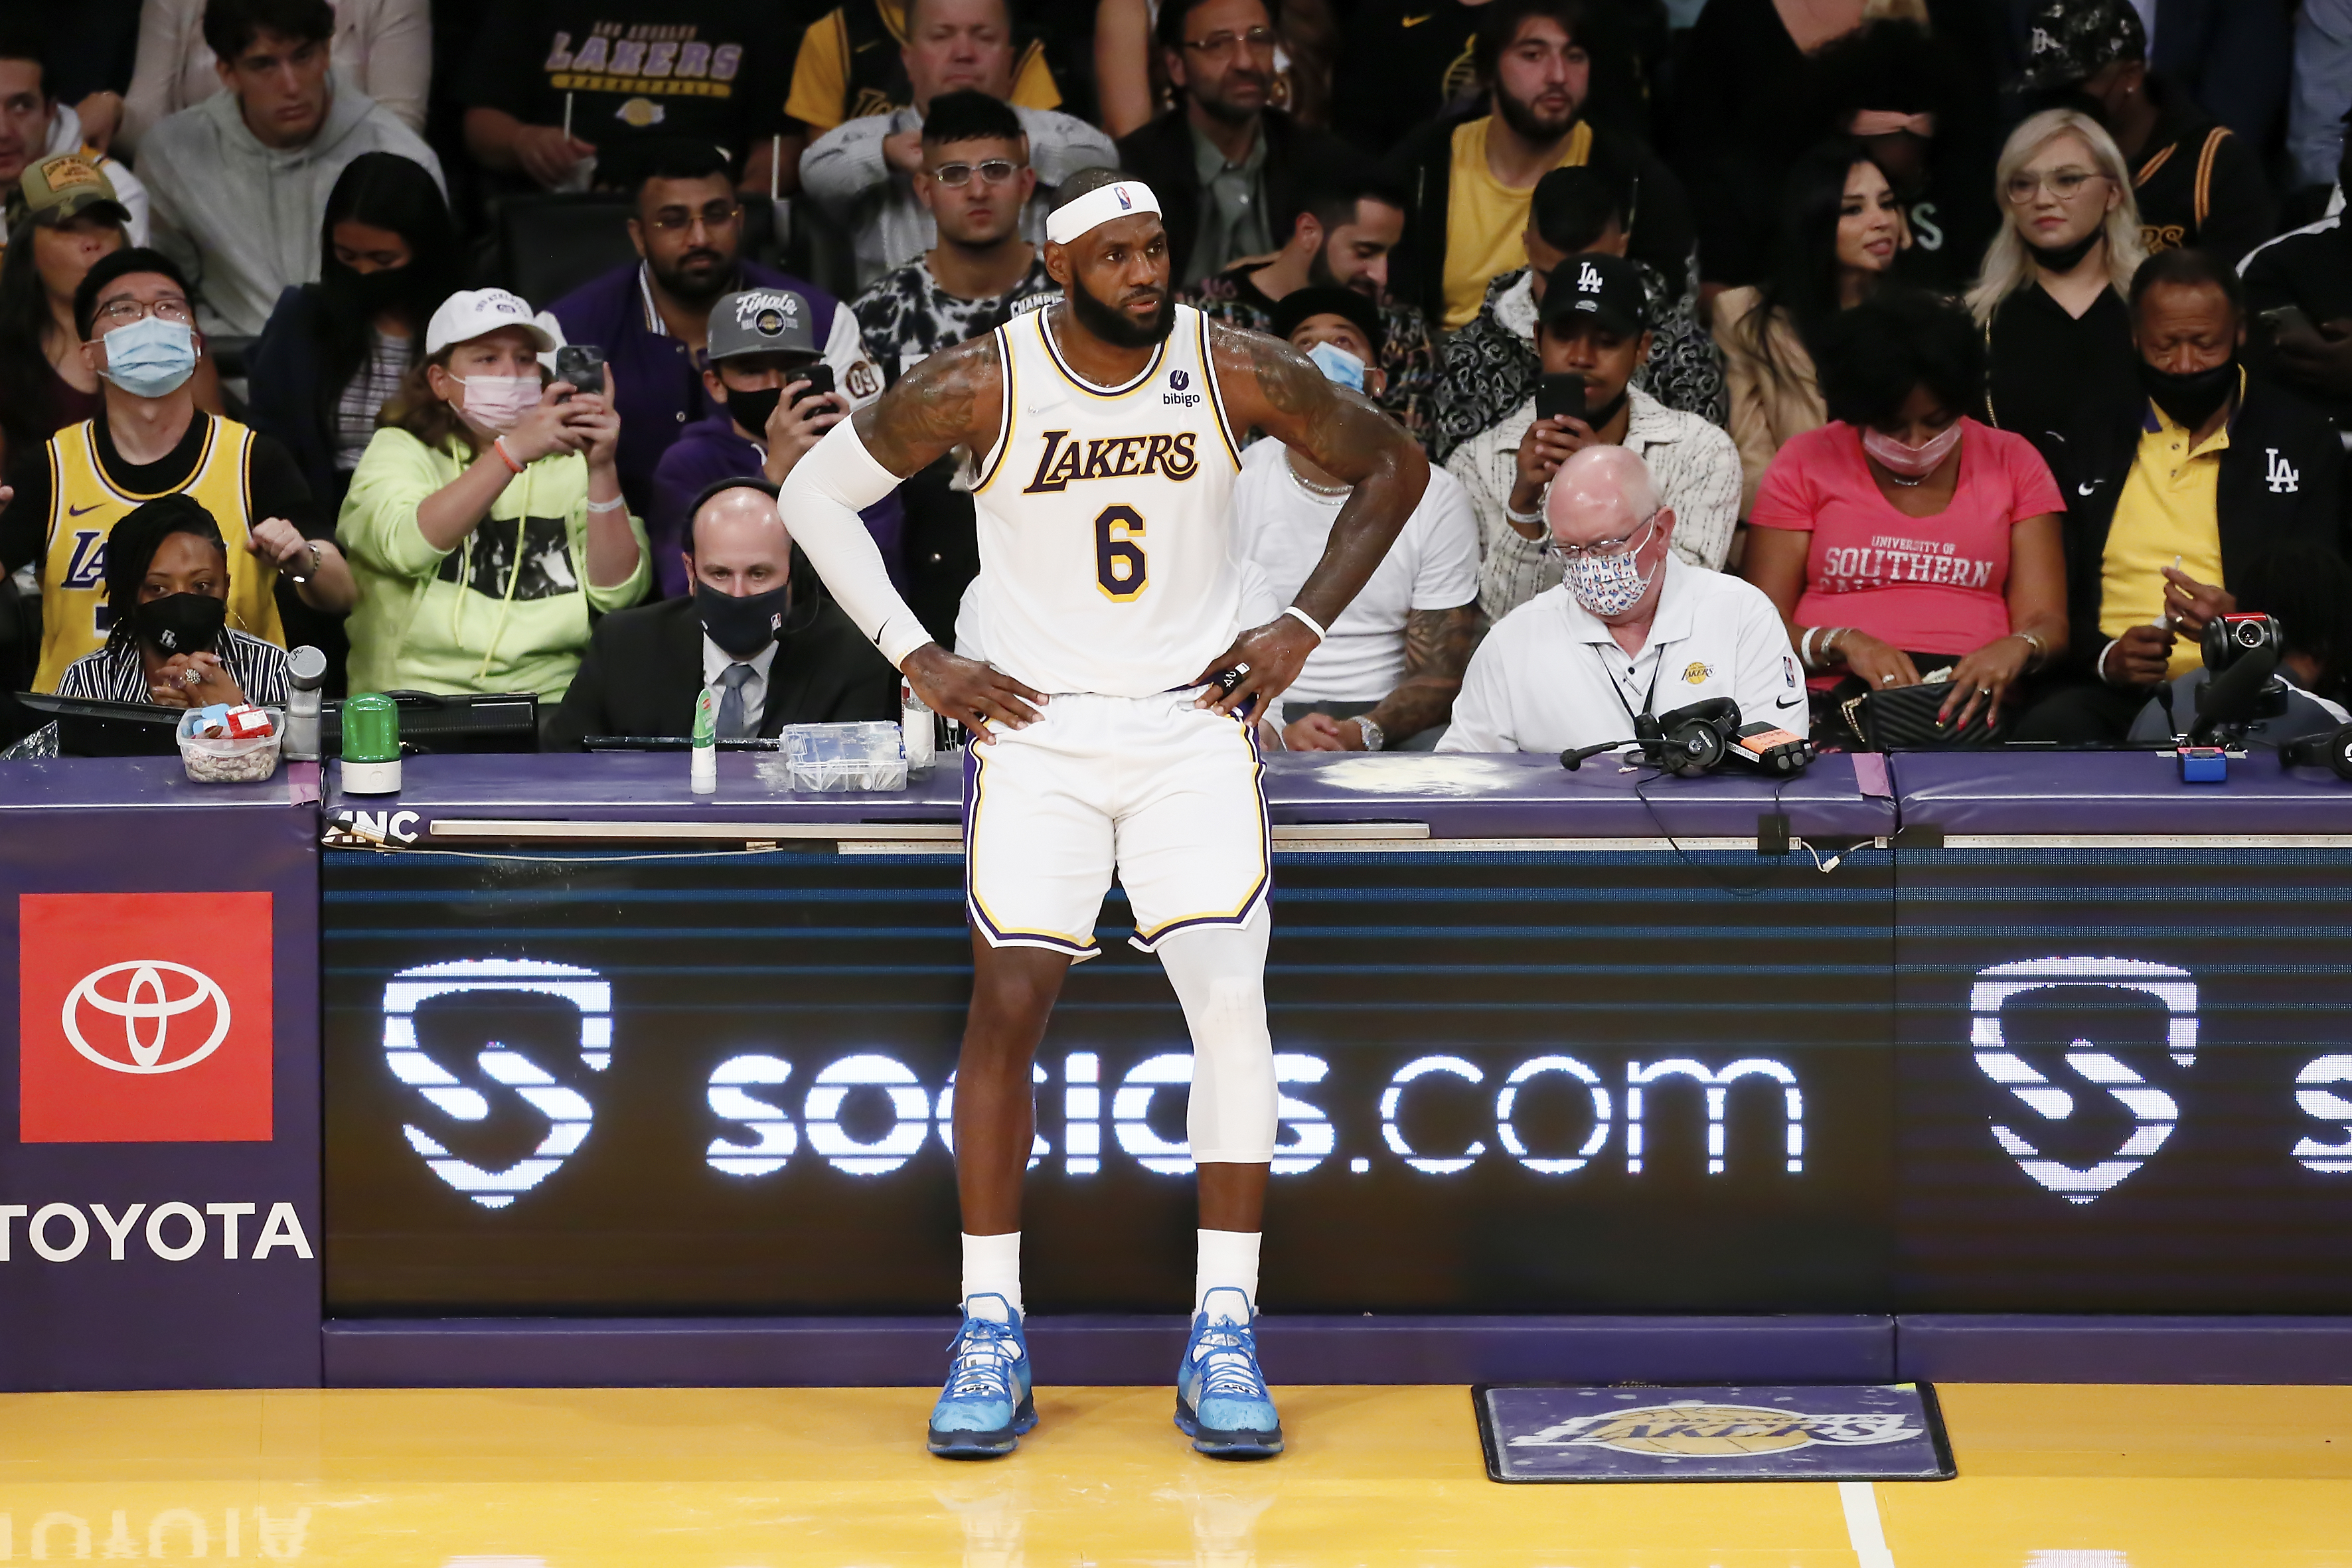 LeBron James #6 of the Los Angeles Lakers waits to enter the game during a game at the STAPLES Center on October 24, 2021 in Los Angeles, California.